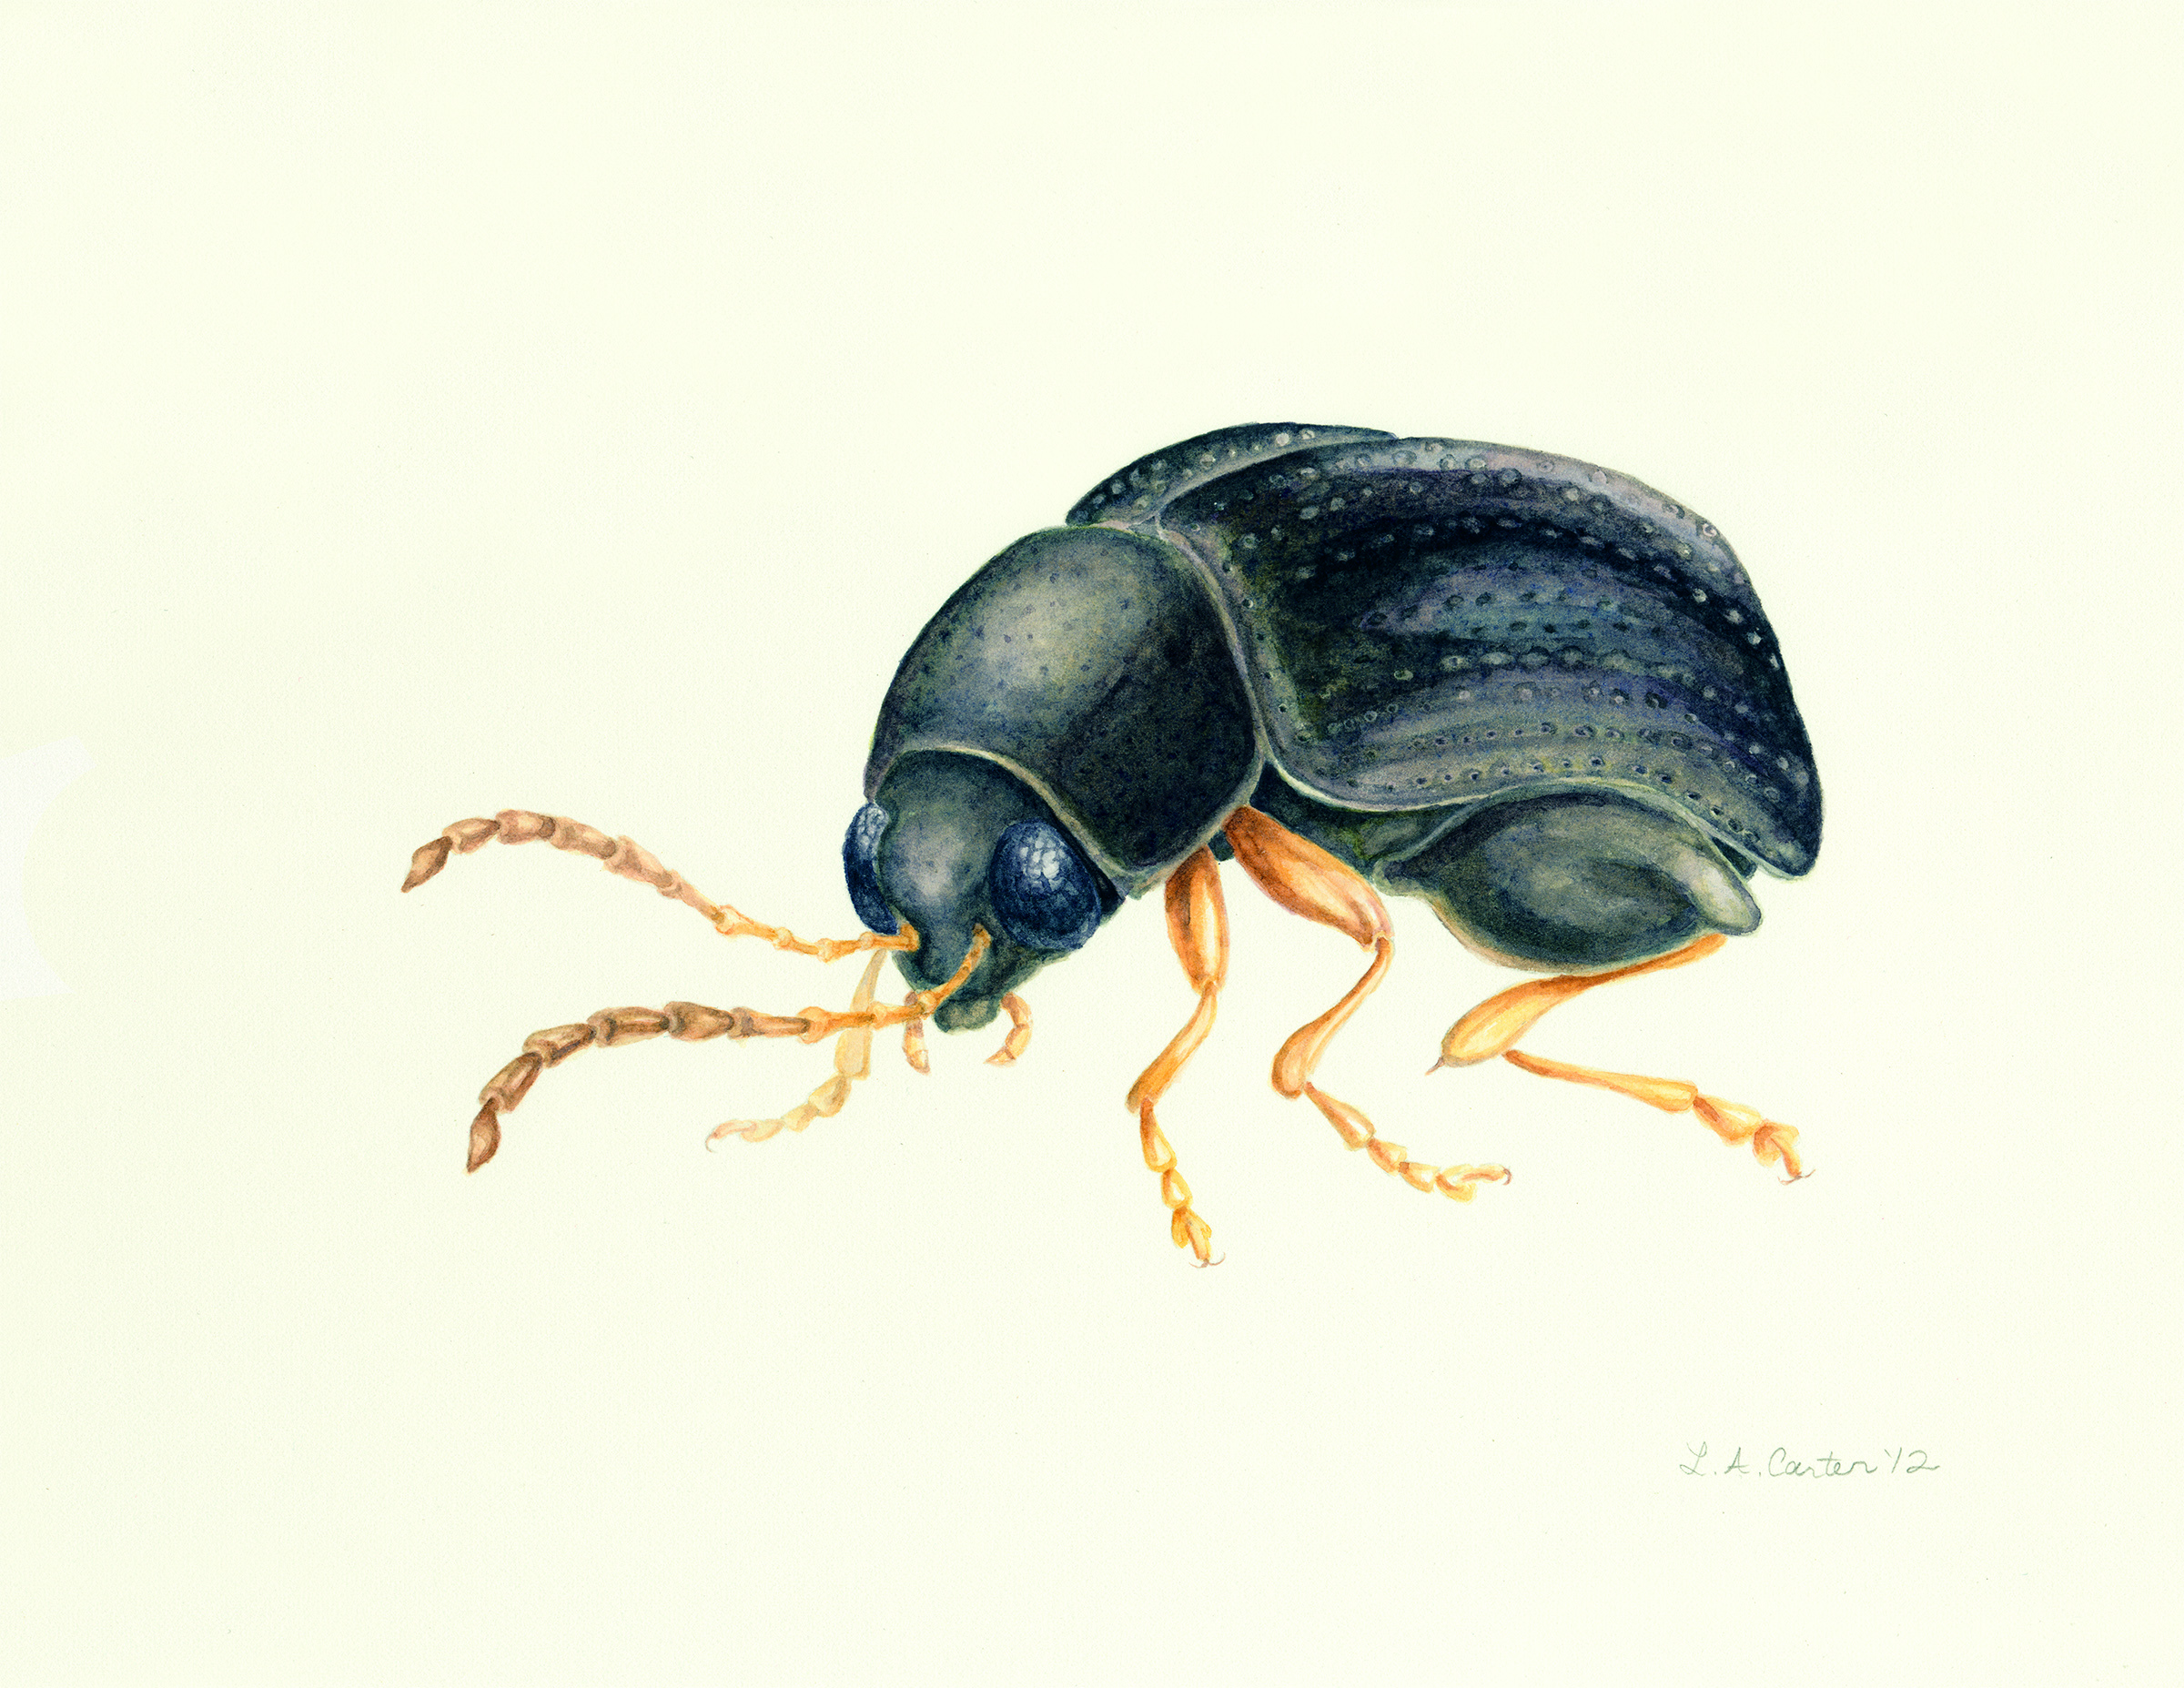 This illustration of the Appalachian flea beetle, one of hundreds of new species discovered since the All Taxa Biodiversity Inventory began in 1998, is an example of how art plays a role in the ATBI. Illustration by L. A. Carter.